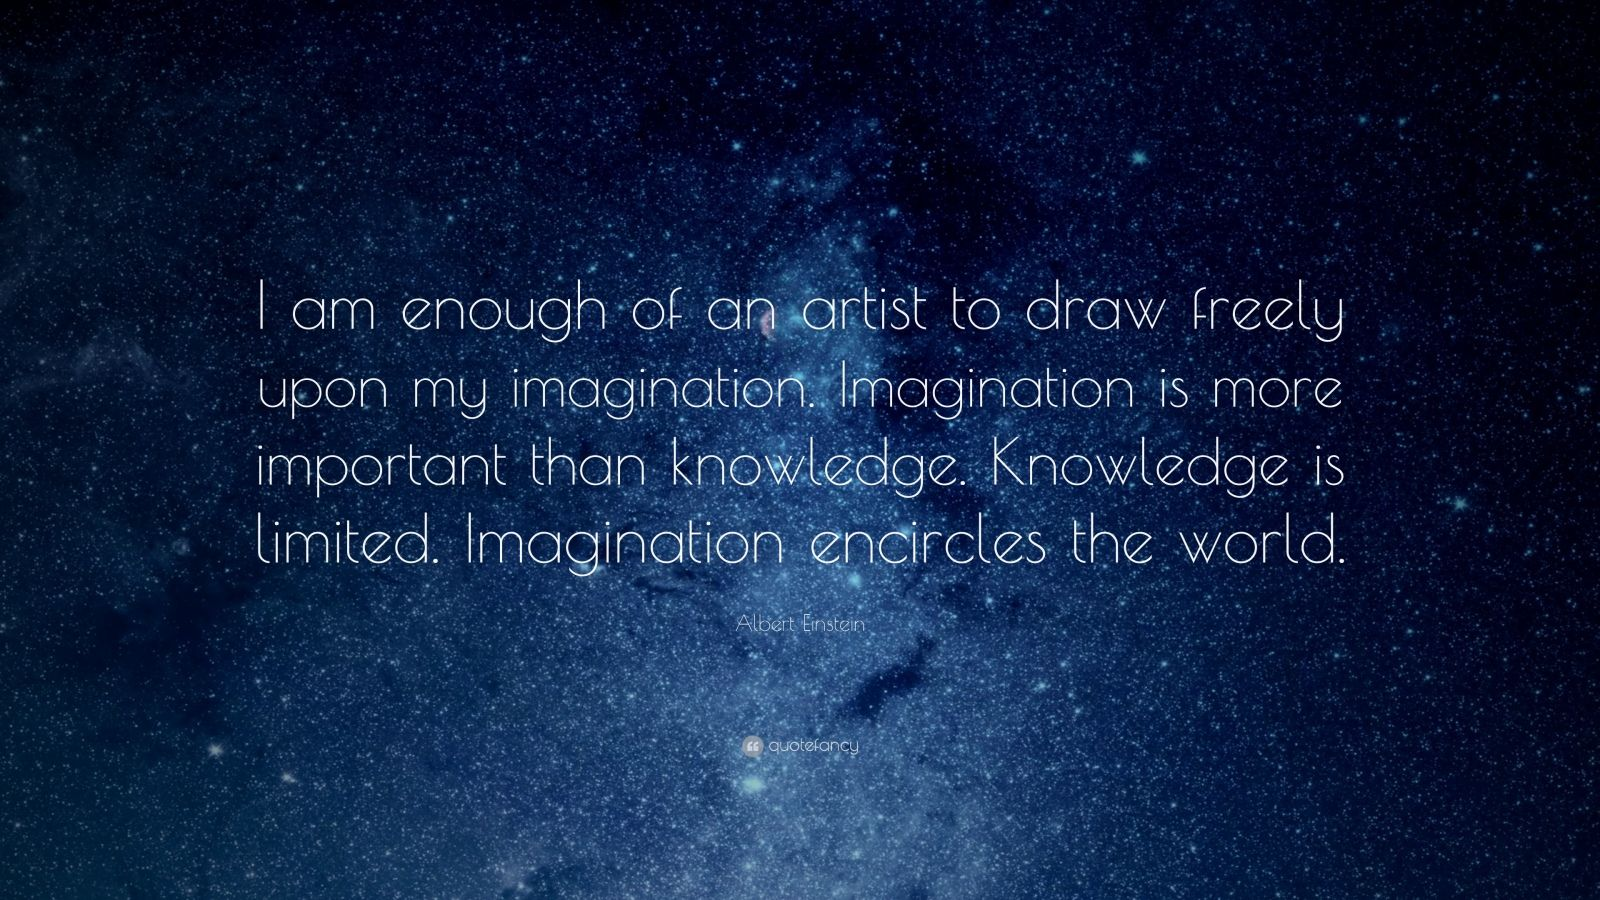 Steve Jobs Quotes Your Time Is Limited Wallpaper Albert Einstein Quote I Am Enough Of An Artist To Draw